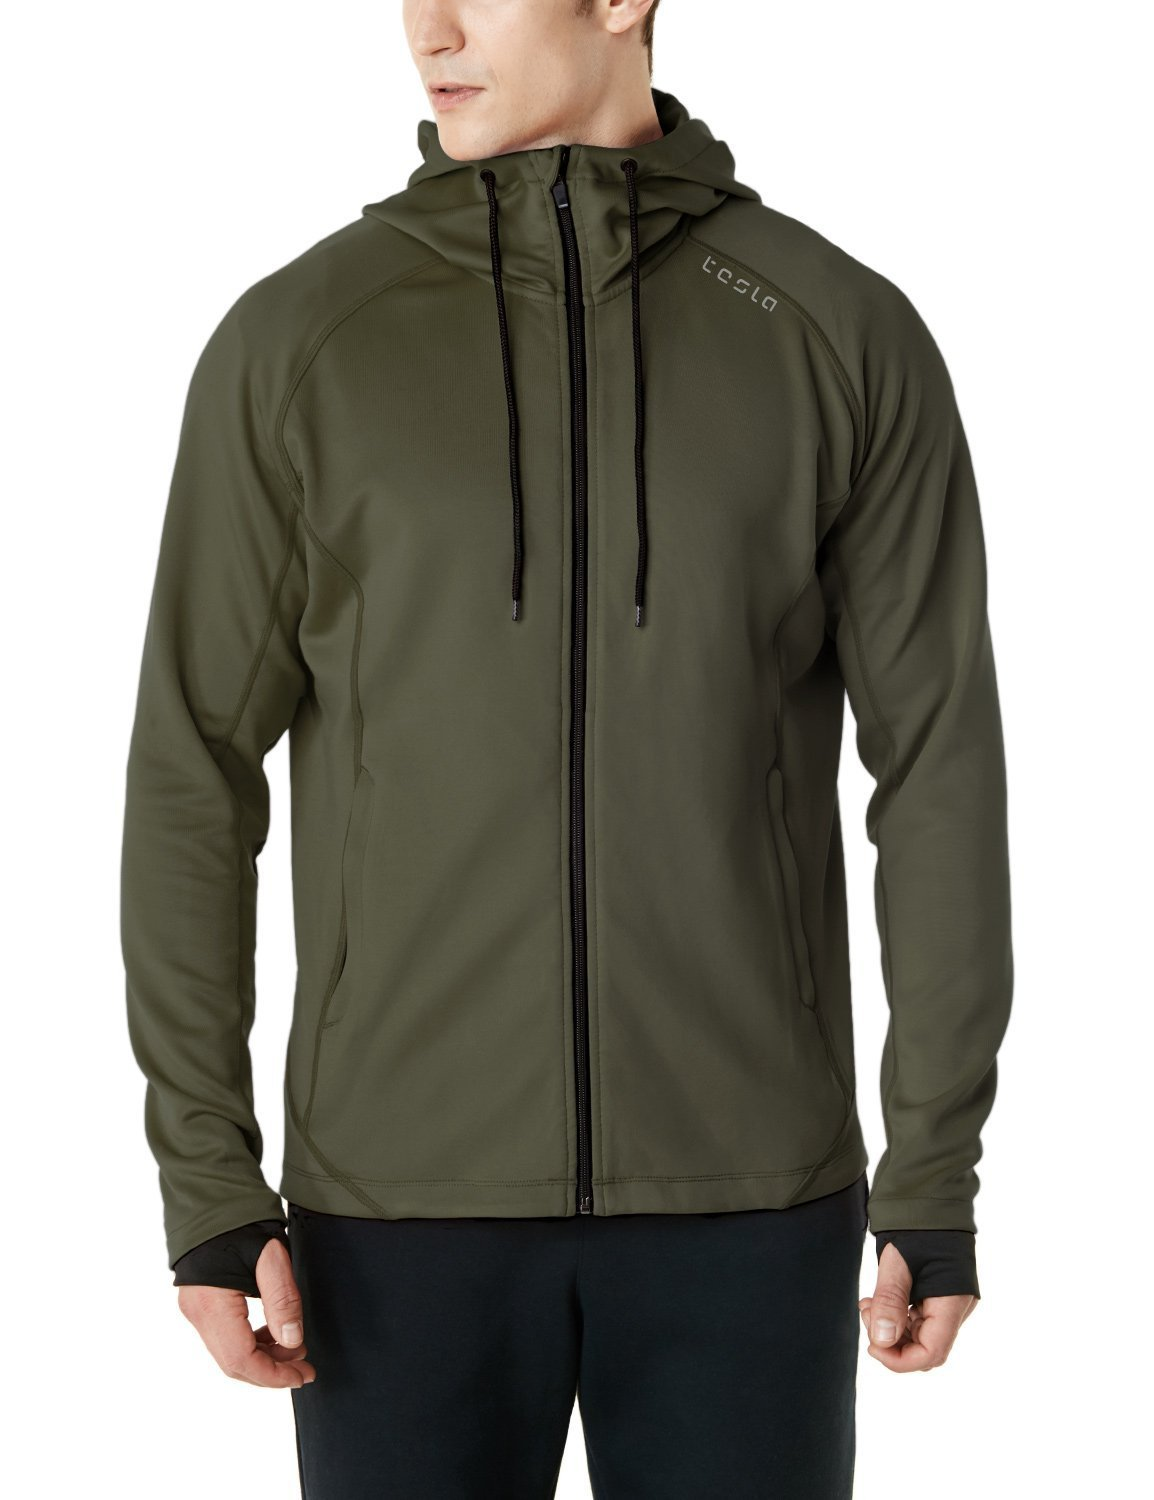 TSLA Men's Performance Active Training Full-Zip Hoodie Jacket, Active Fullzip(mkj03) - Khaki, Small by TSLA